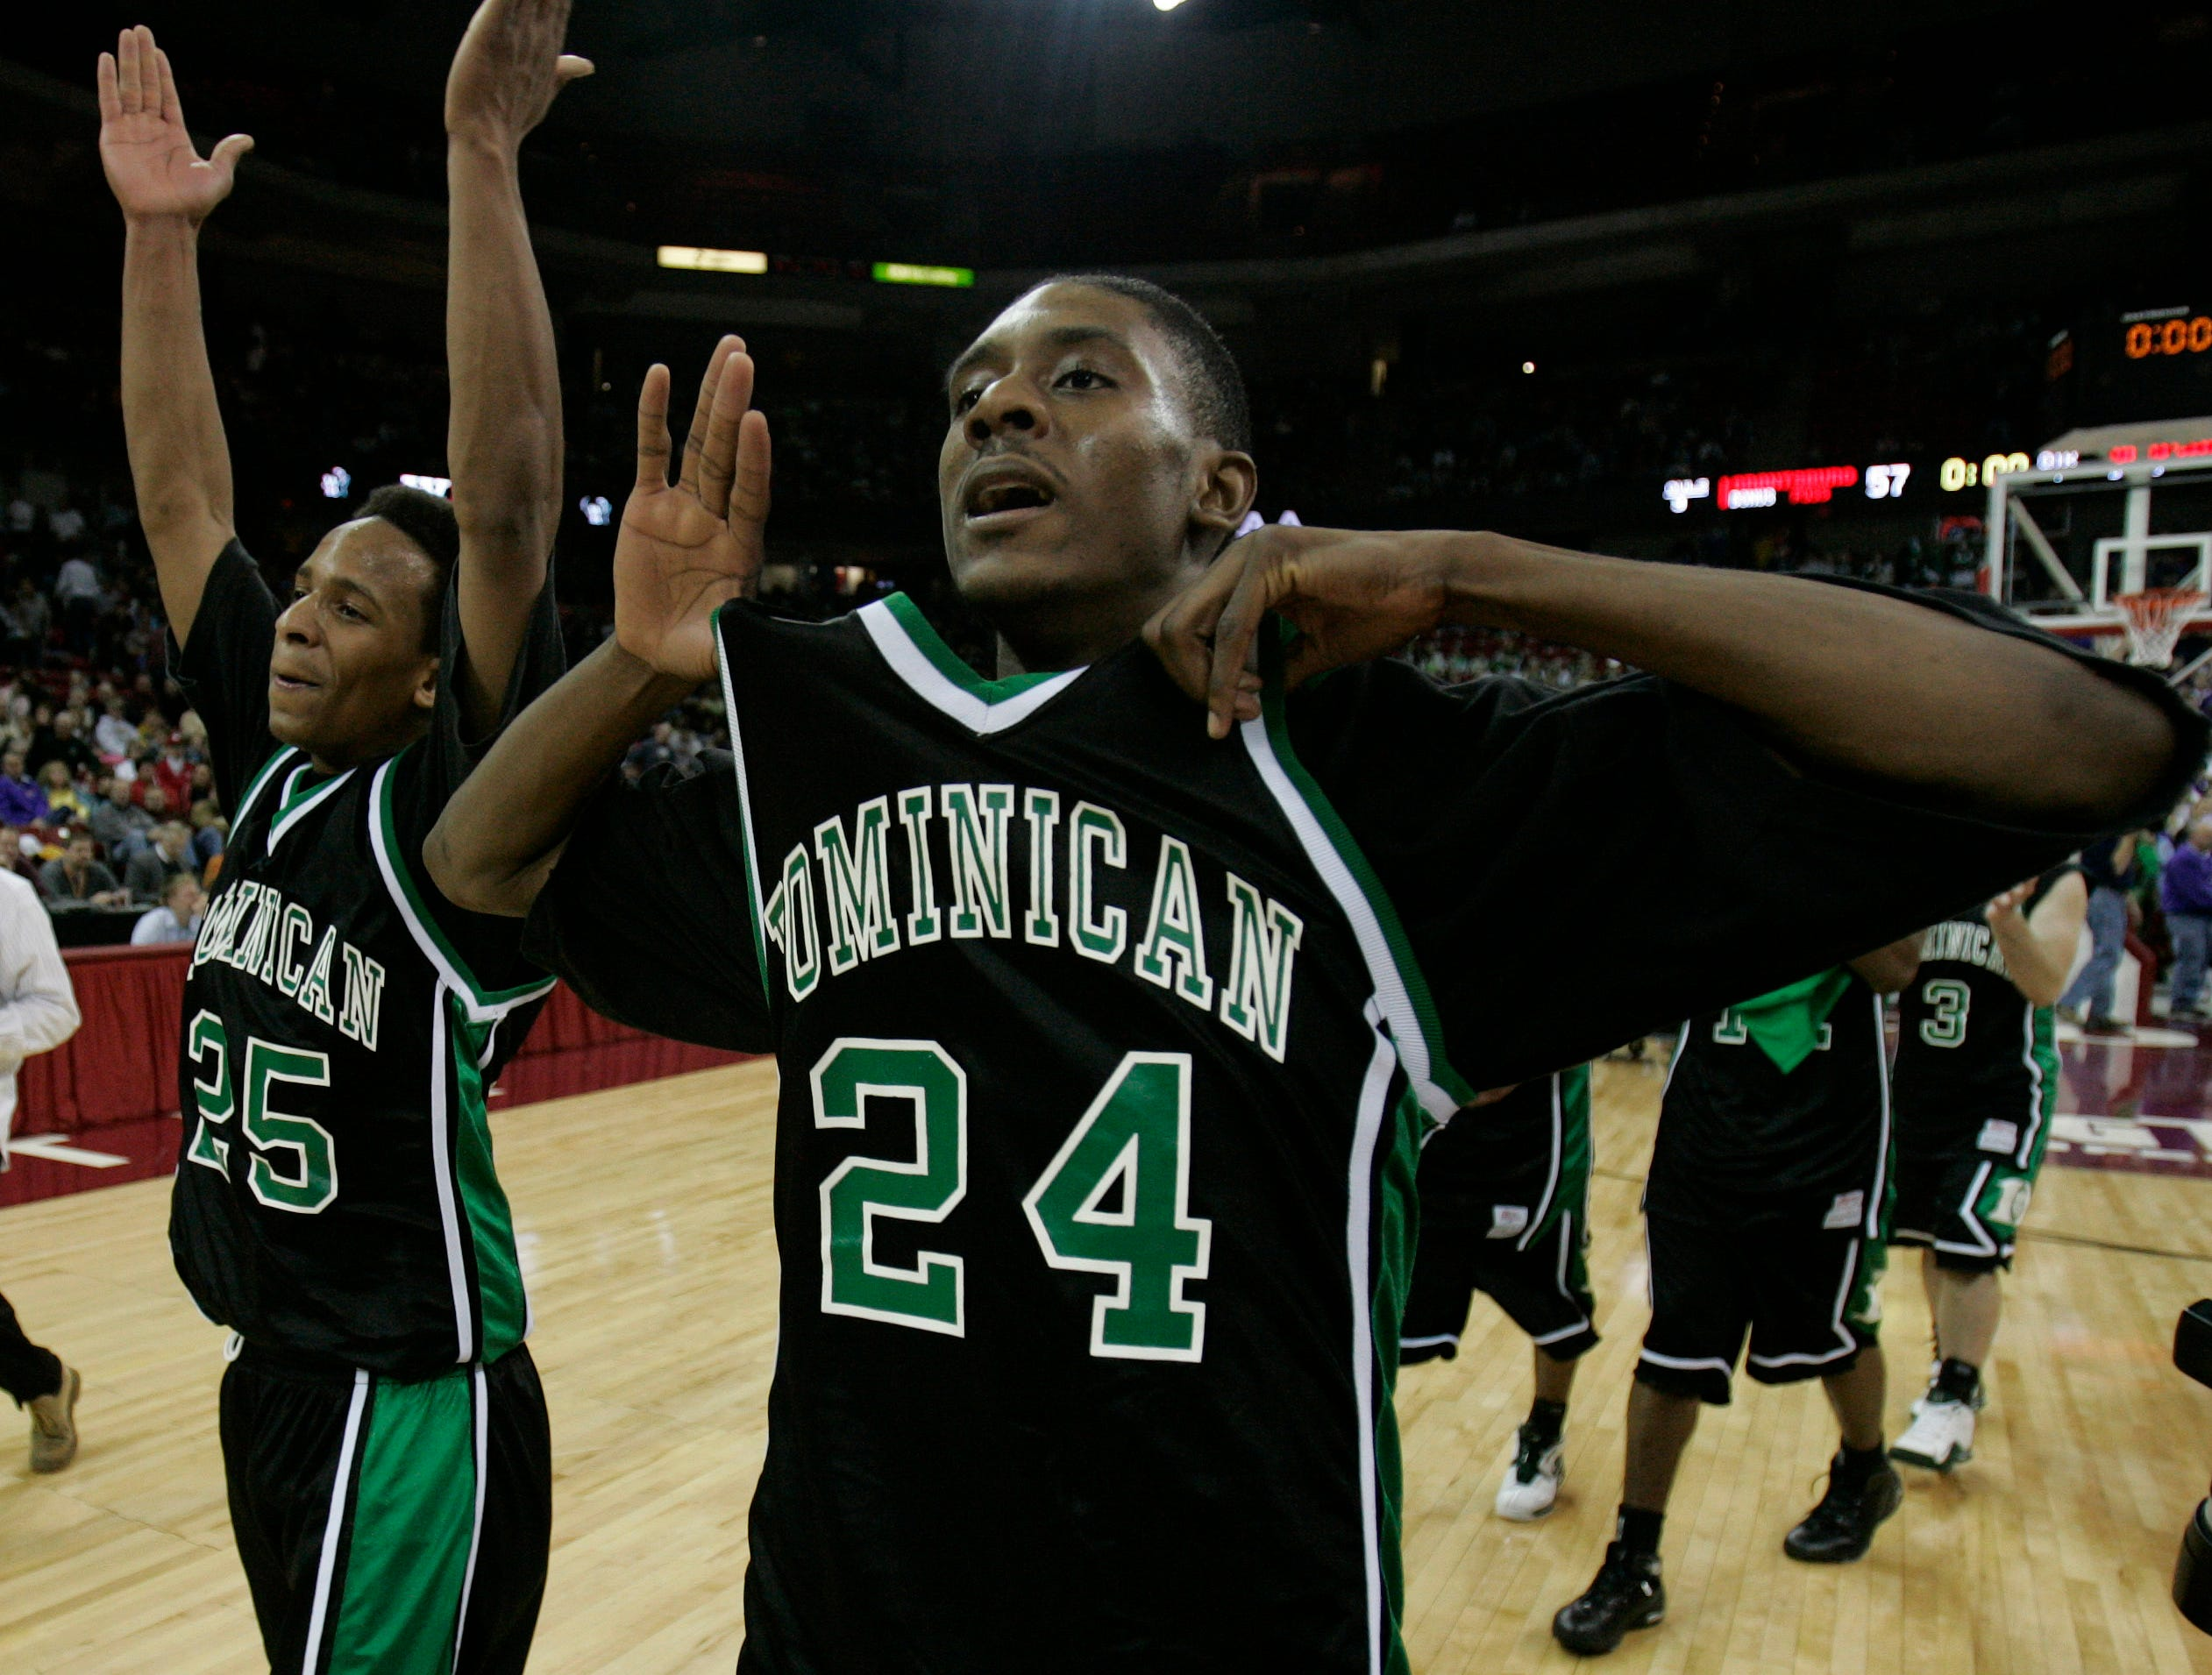 Walter Blount Jr. along with Brandon Brown celebrate Dominican's 2005 Division 3 Win 66-57 over Grantsburg at the Kohl Center Saturday night.